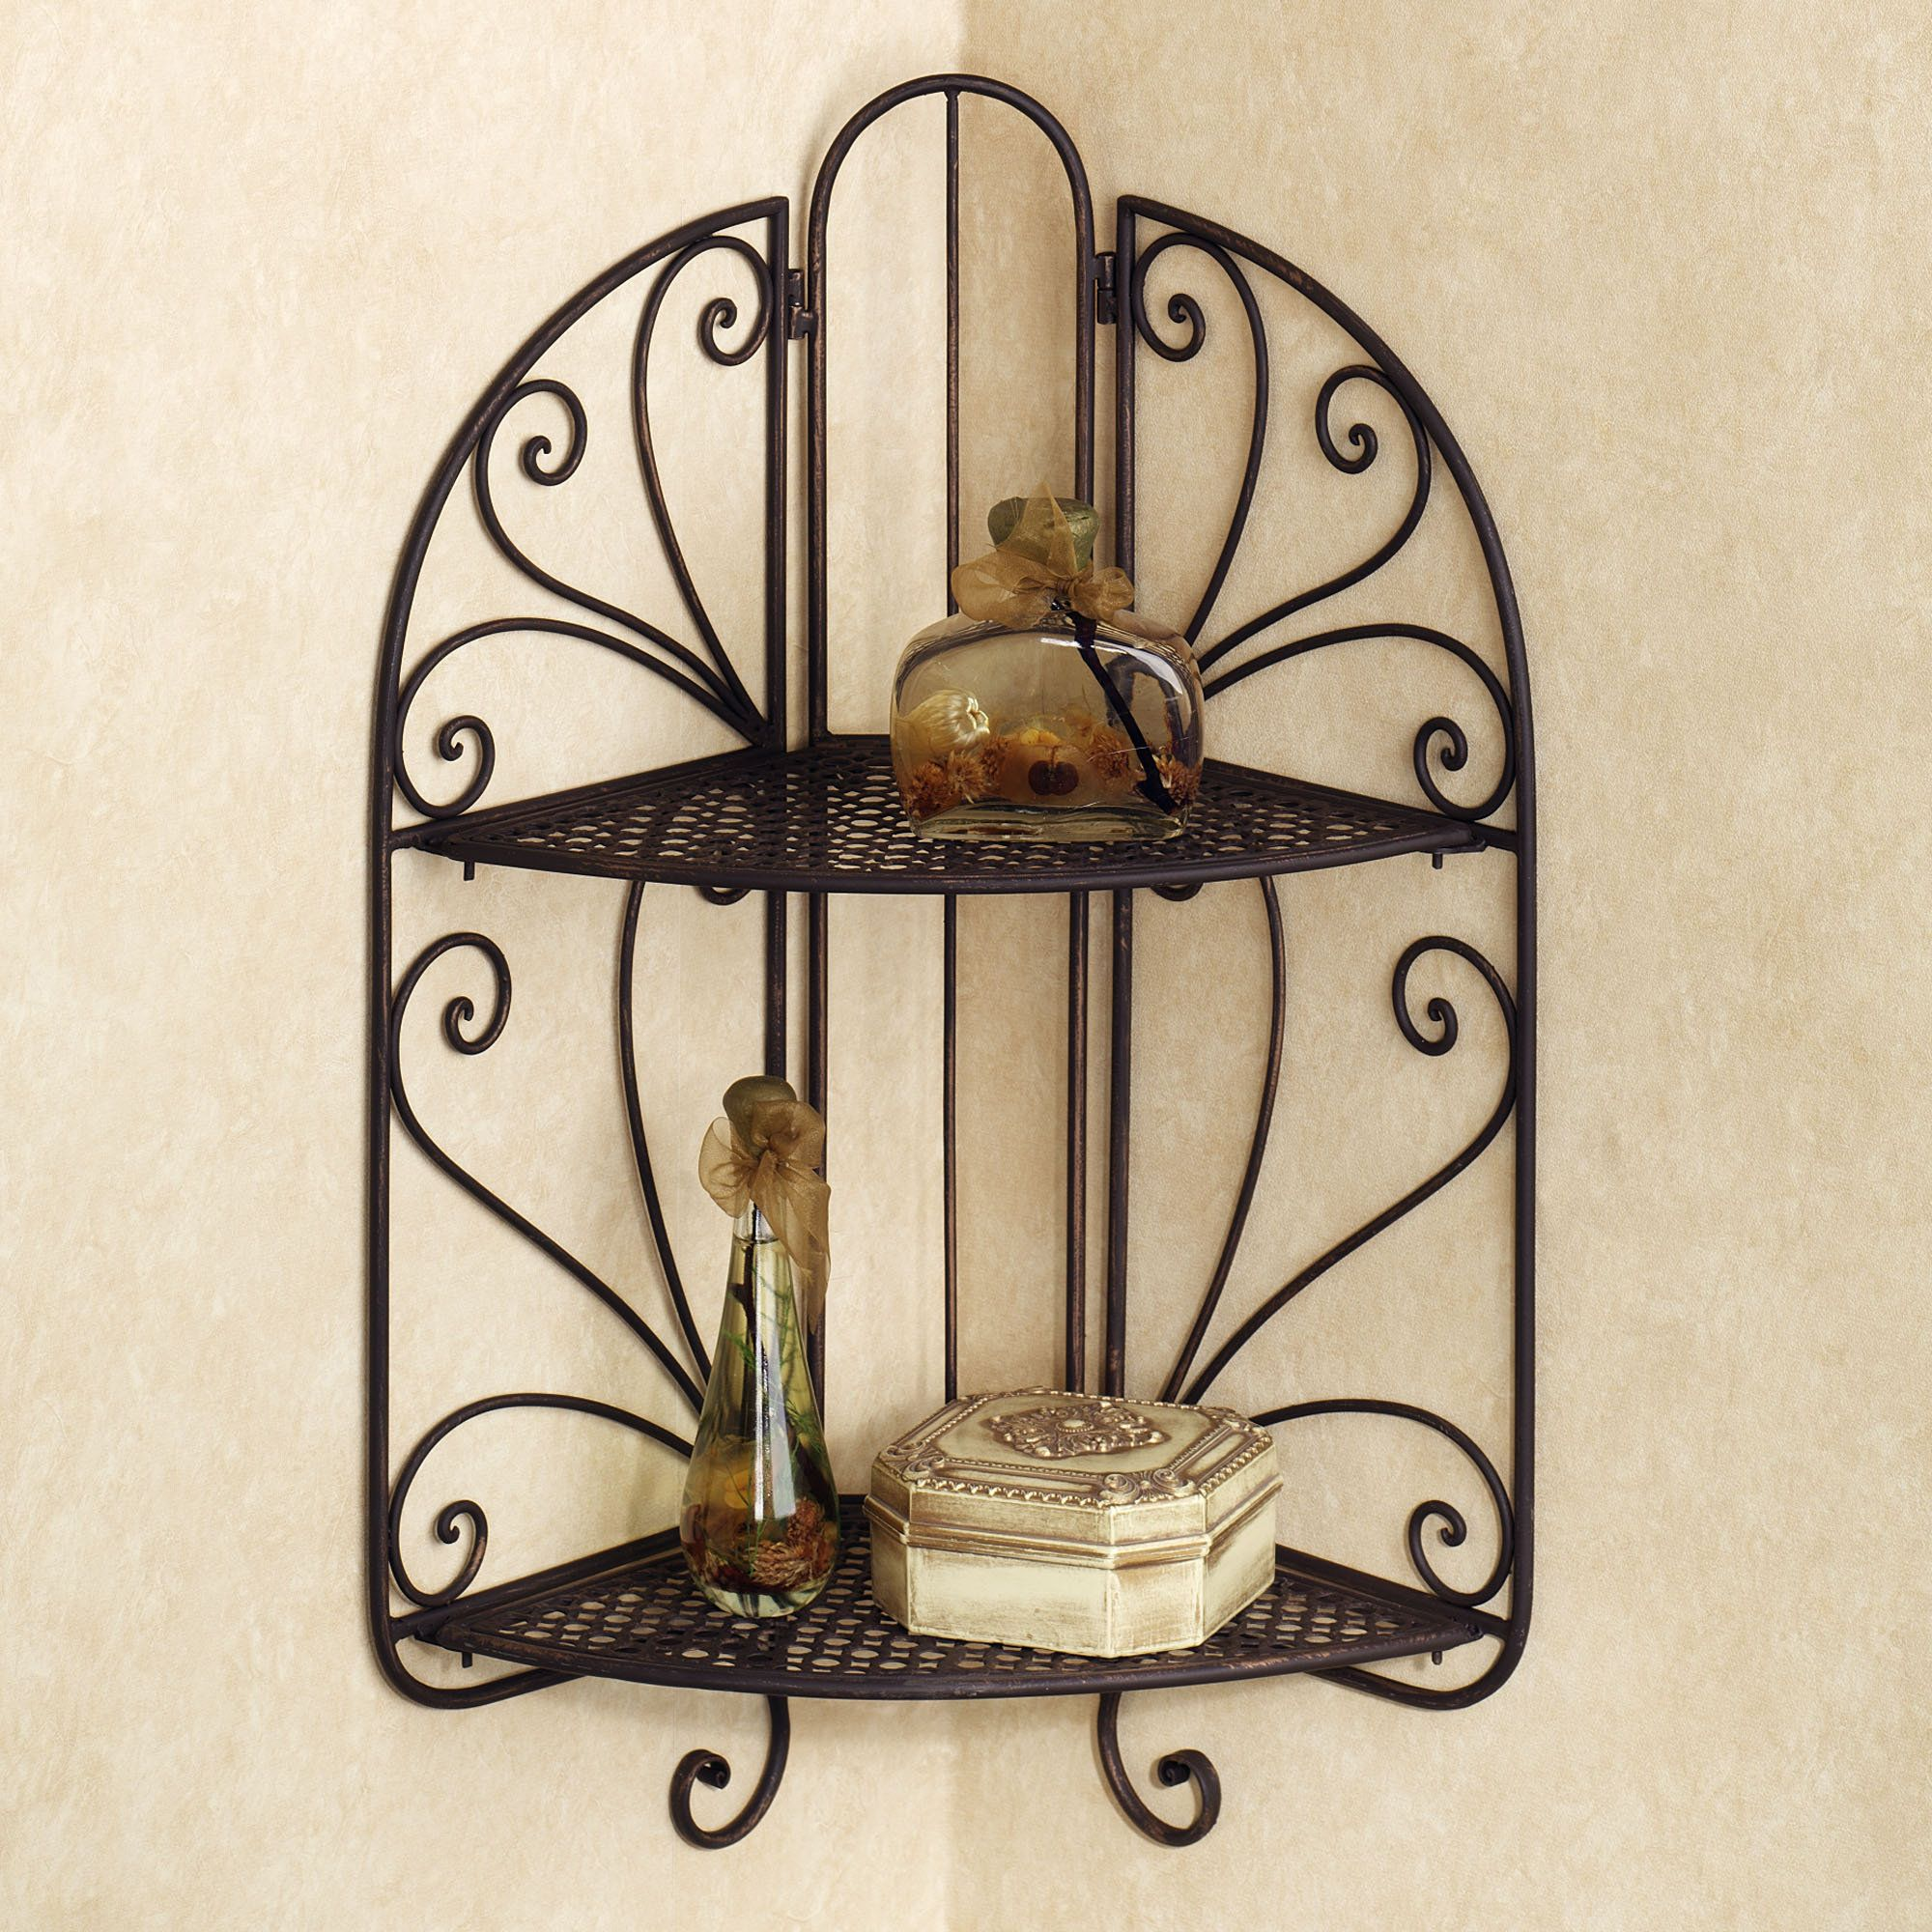 wall shelf wrought iron wall decor iron decor corner wall shelves iron